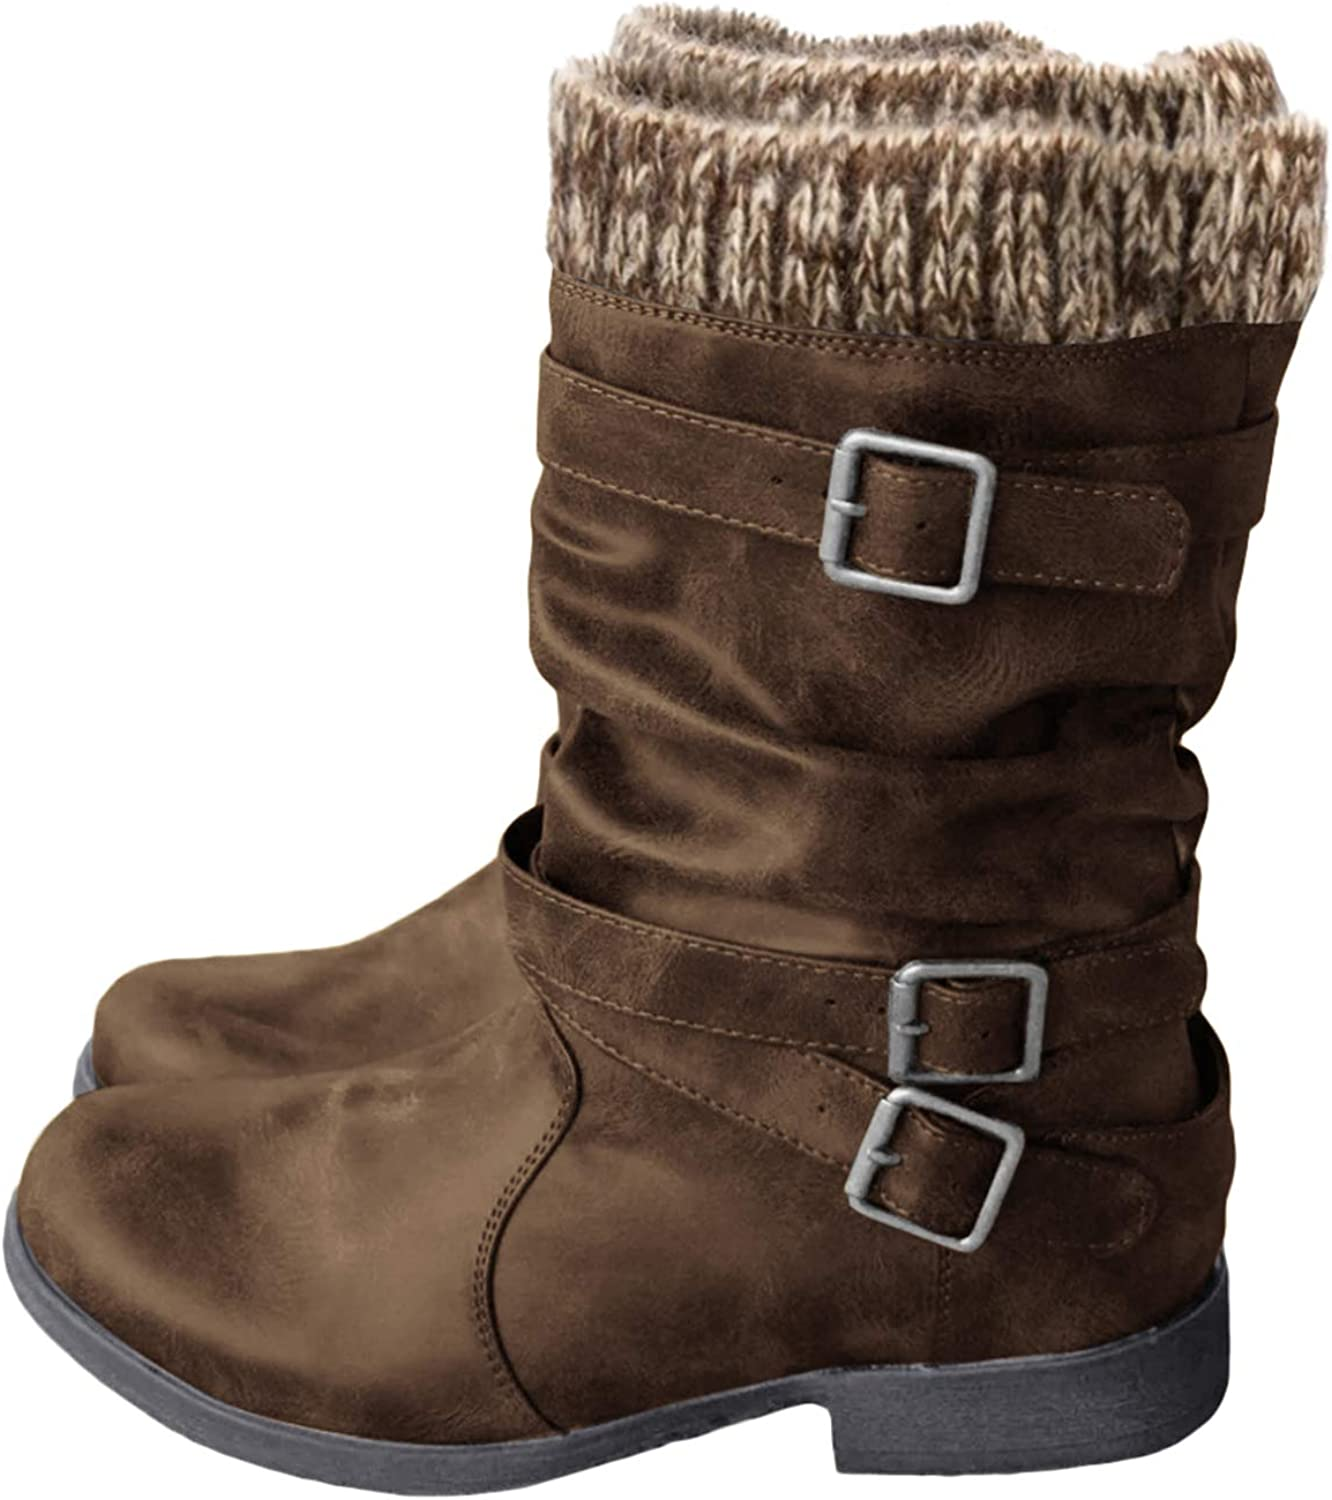 Coutgo Womens Slouchy Mid Calf Boots Winter Flat Low Block Heel Buckle Strap Faux Leather Riding Booties